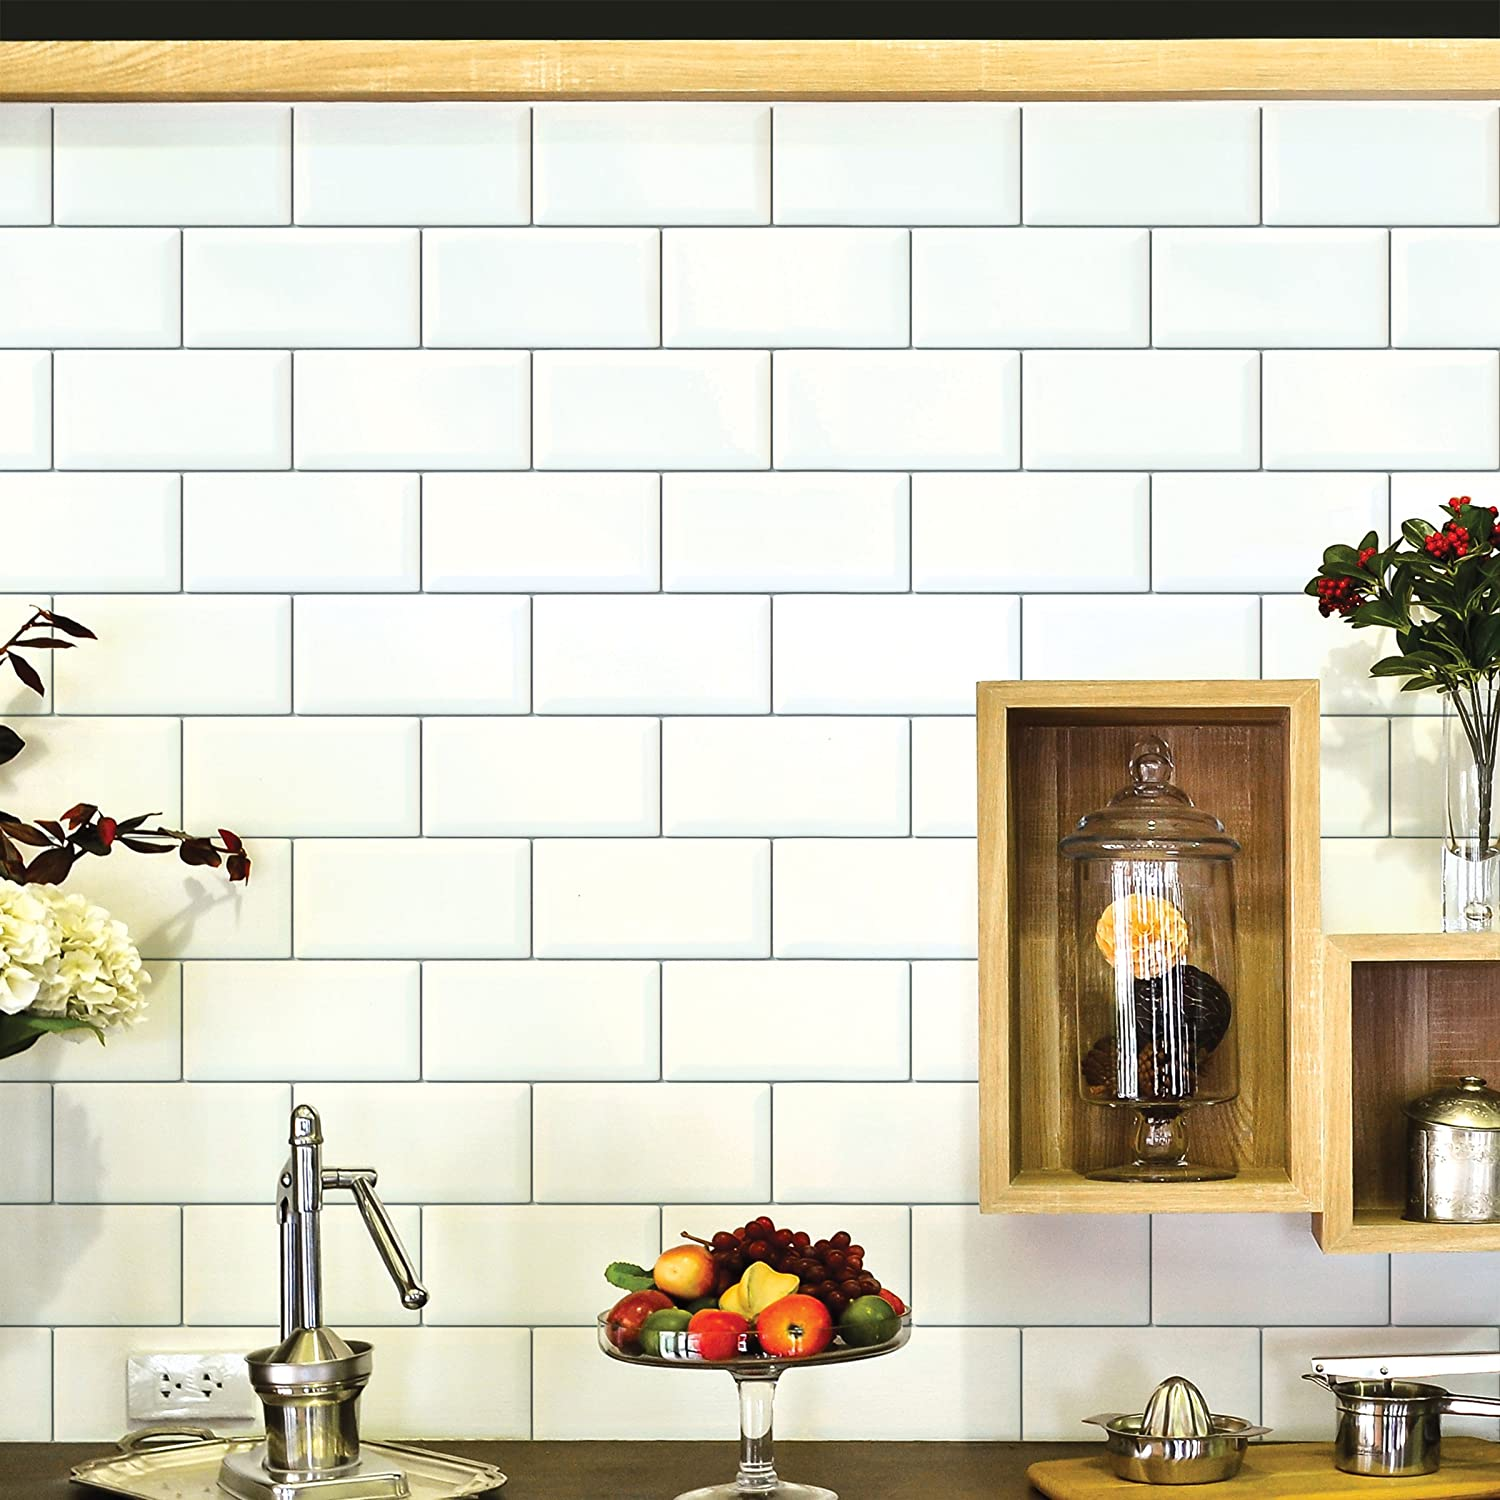 Amazon.com: Wallies Wall Decals, Subway Tiles Wall Stickers, 2 ...